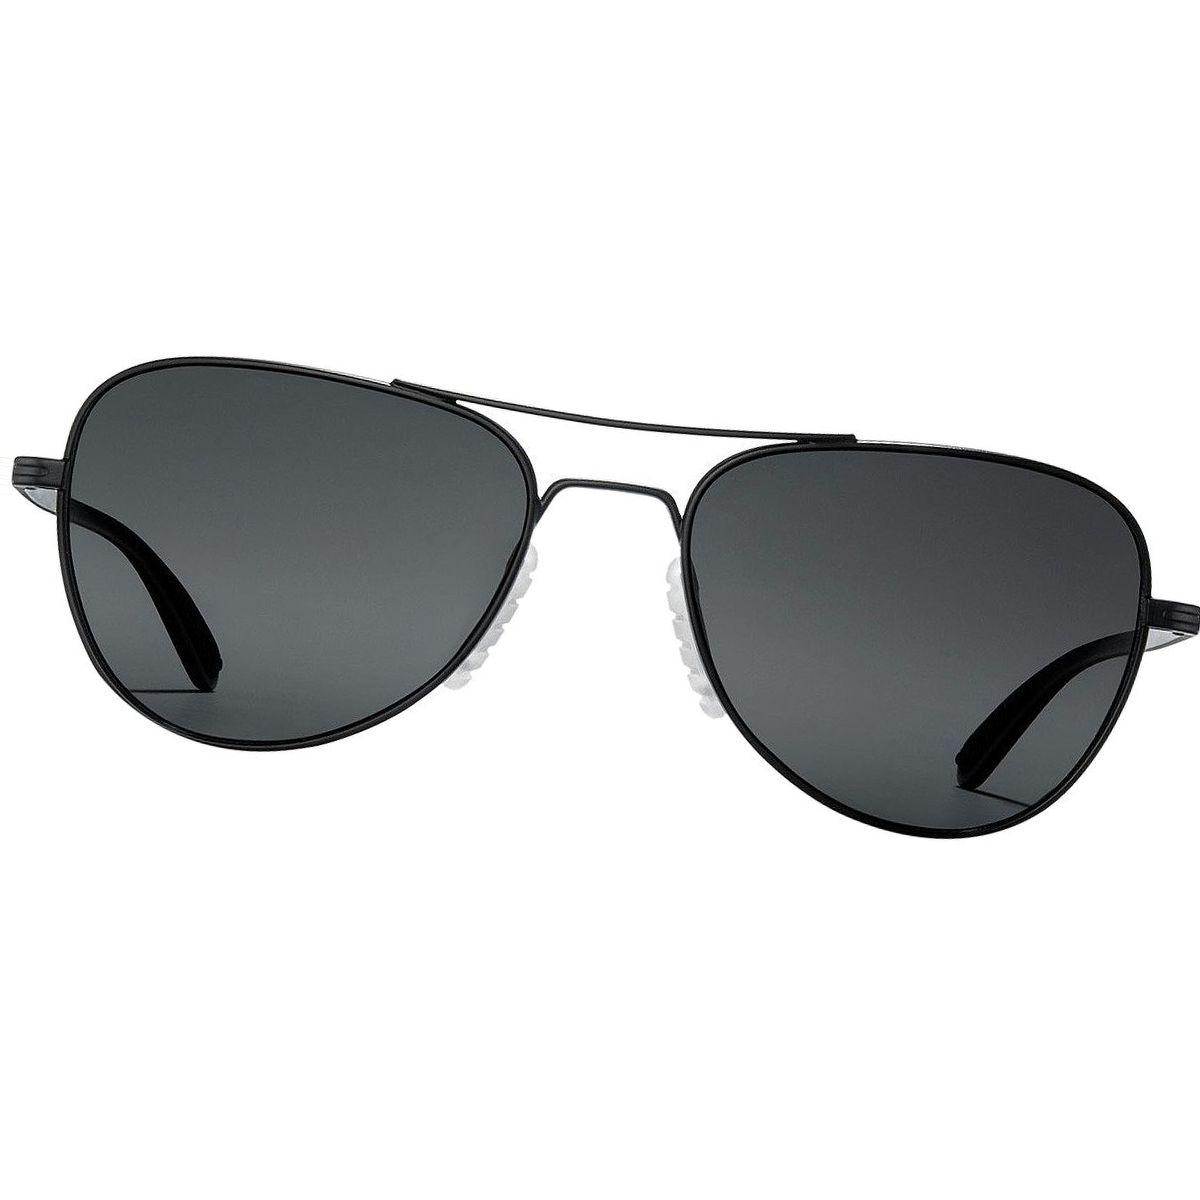 Roka Rio Titanium Polarized Sunglasses - Women's